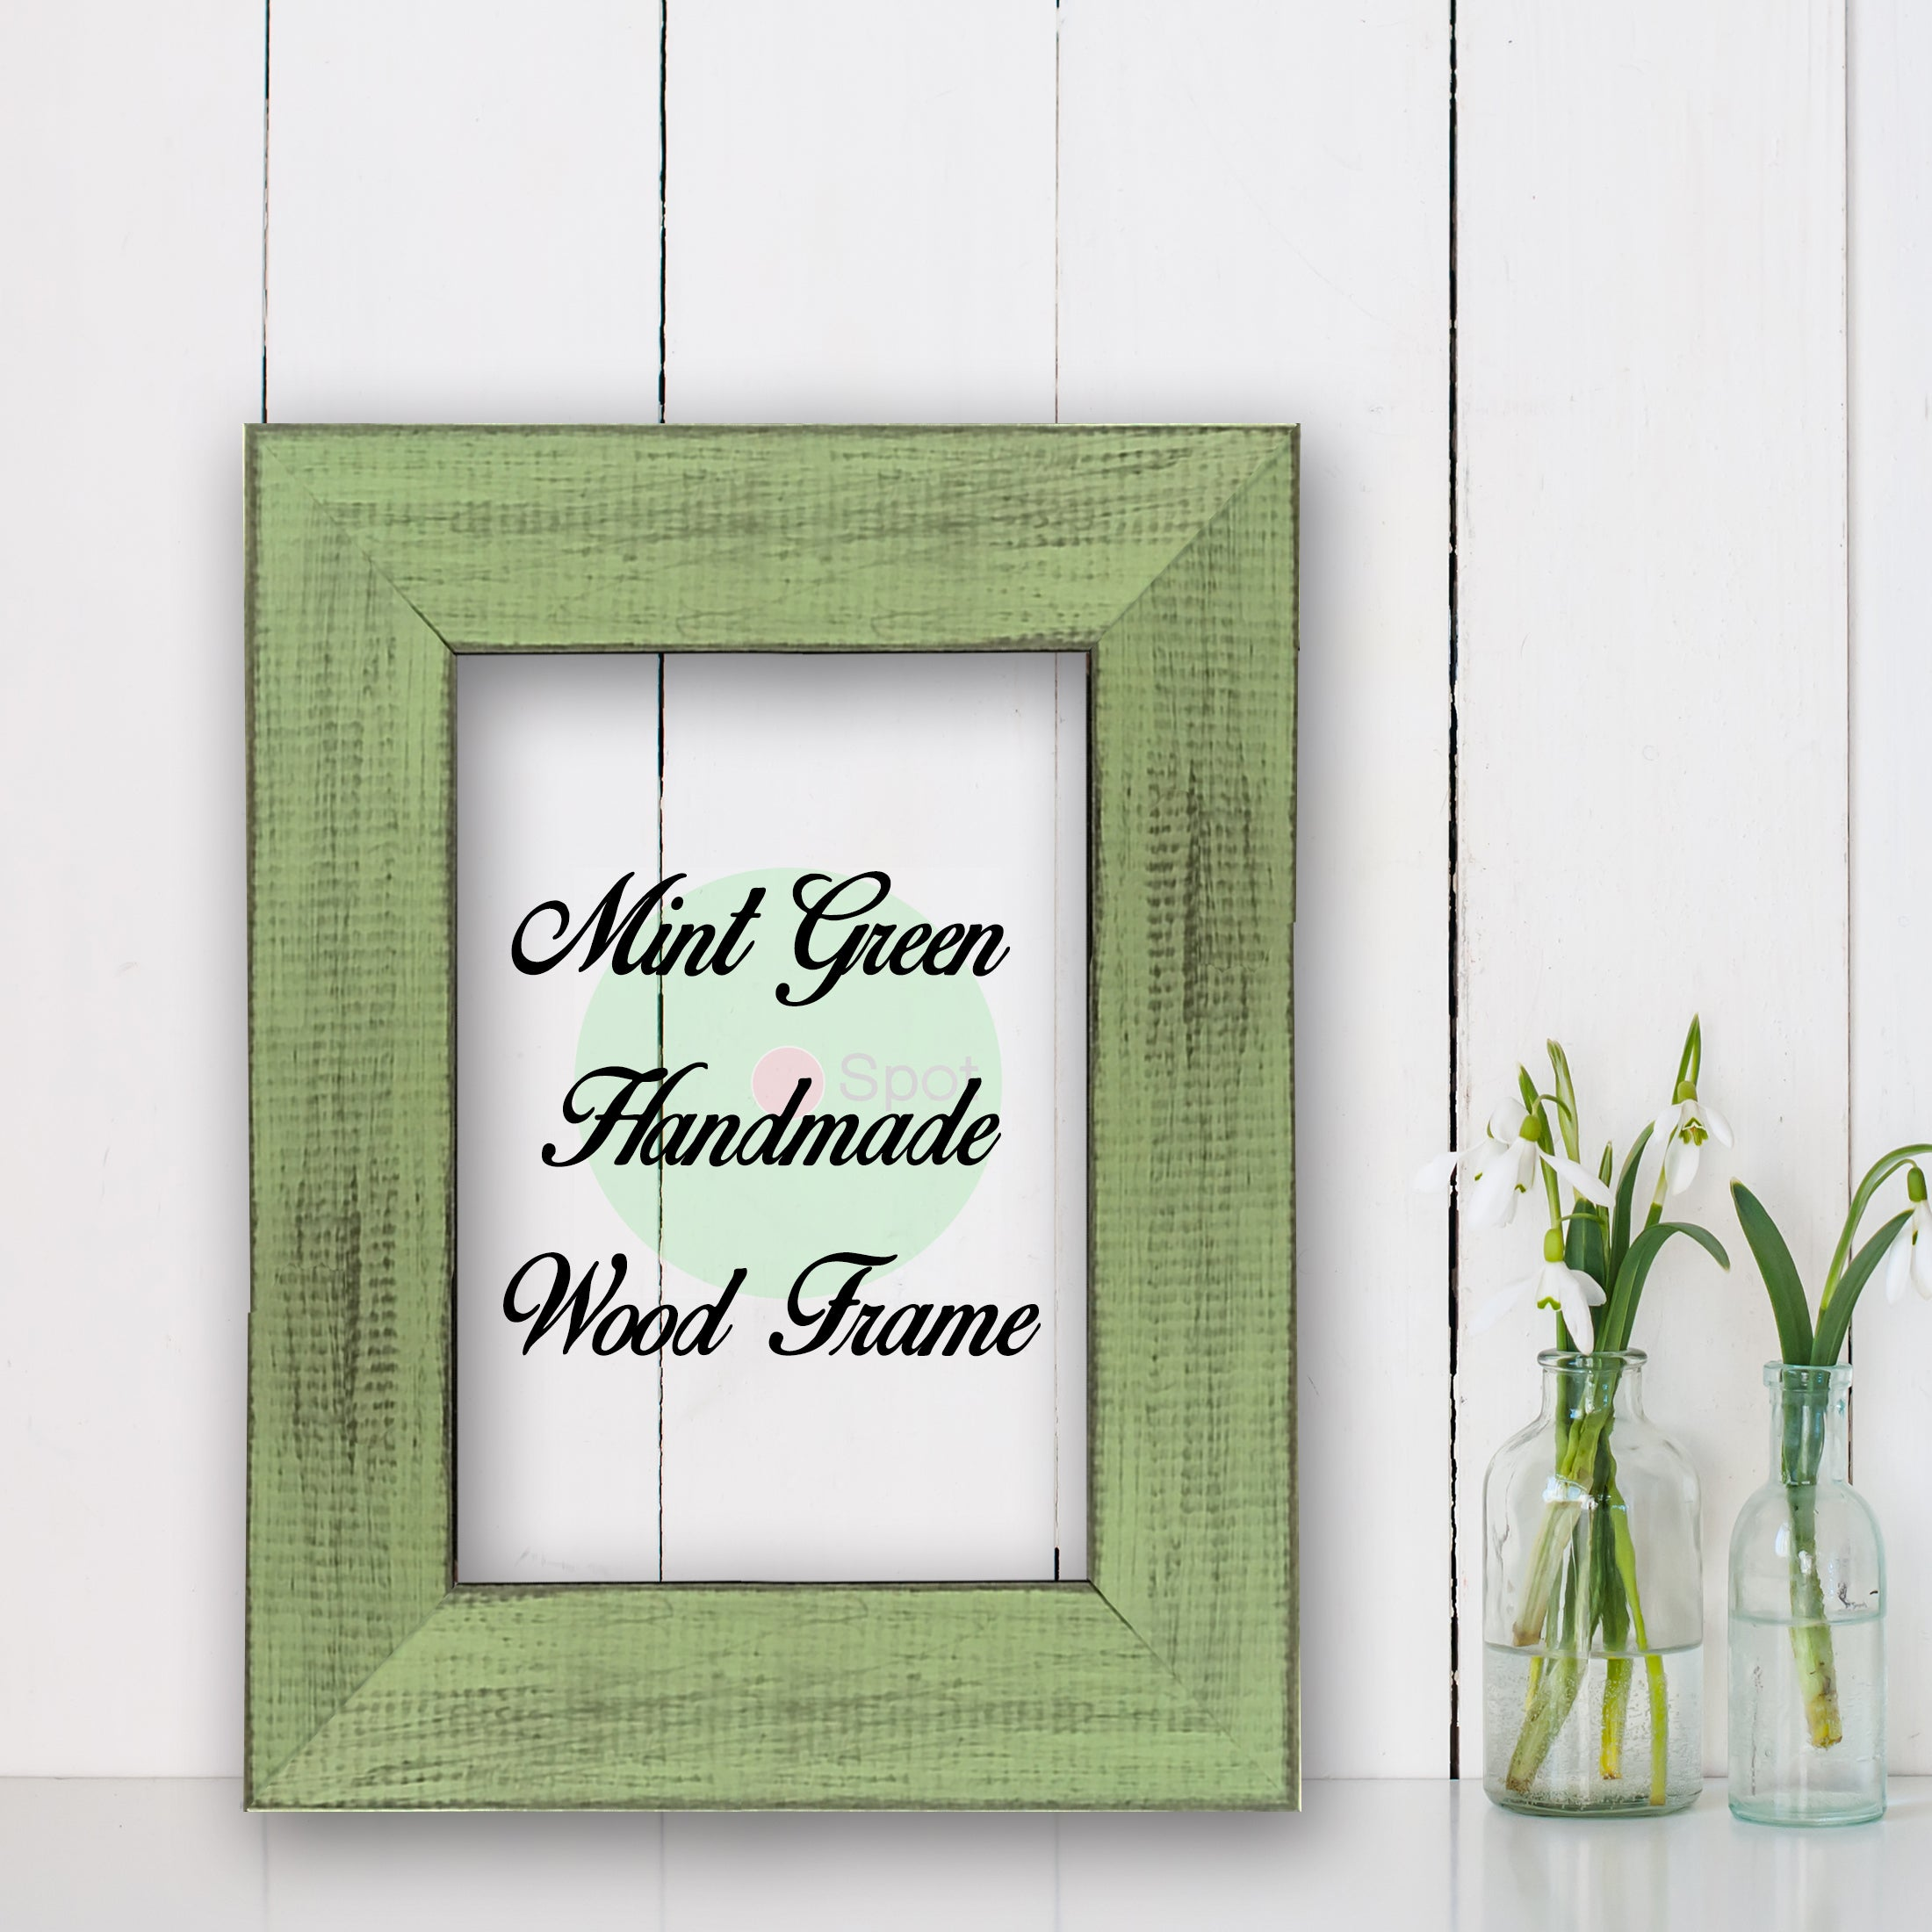 Mint Green Shabby Chic Home Decor Custom Frame Great for Farmhouse Vintage Rustic Wood Picture Frame